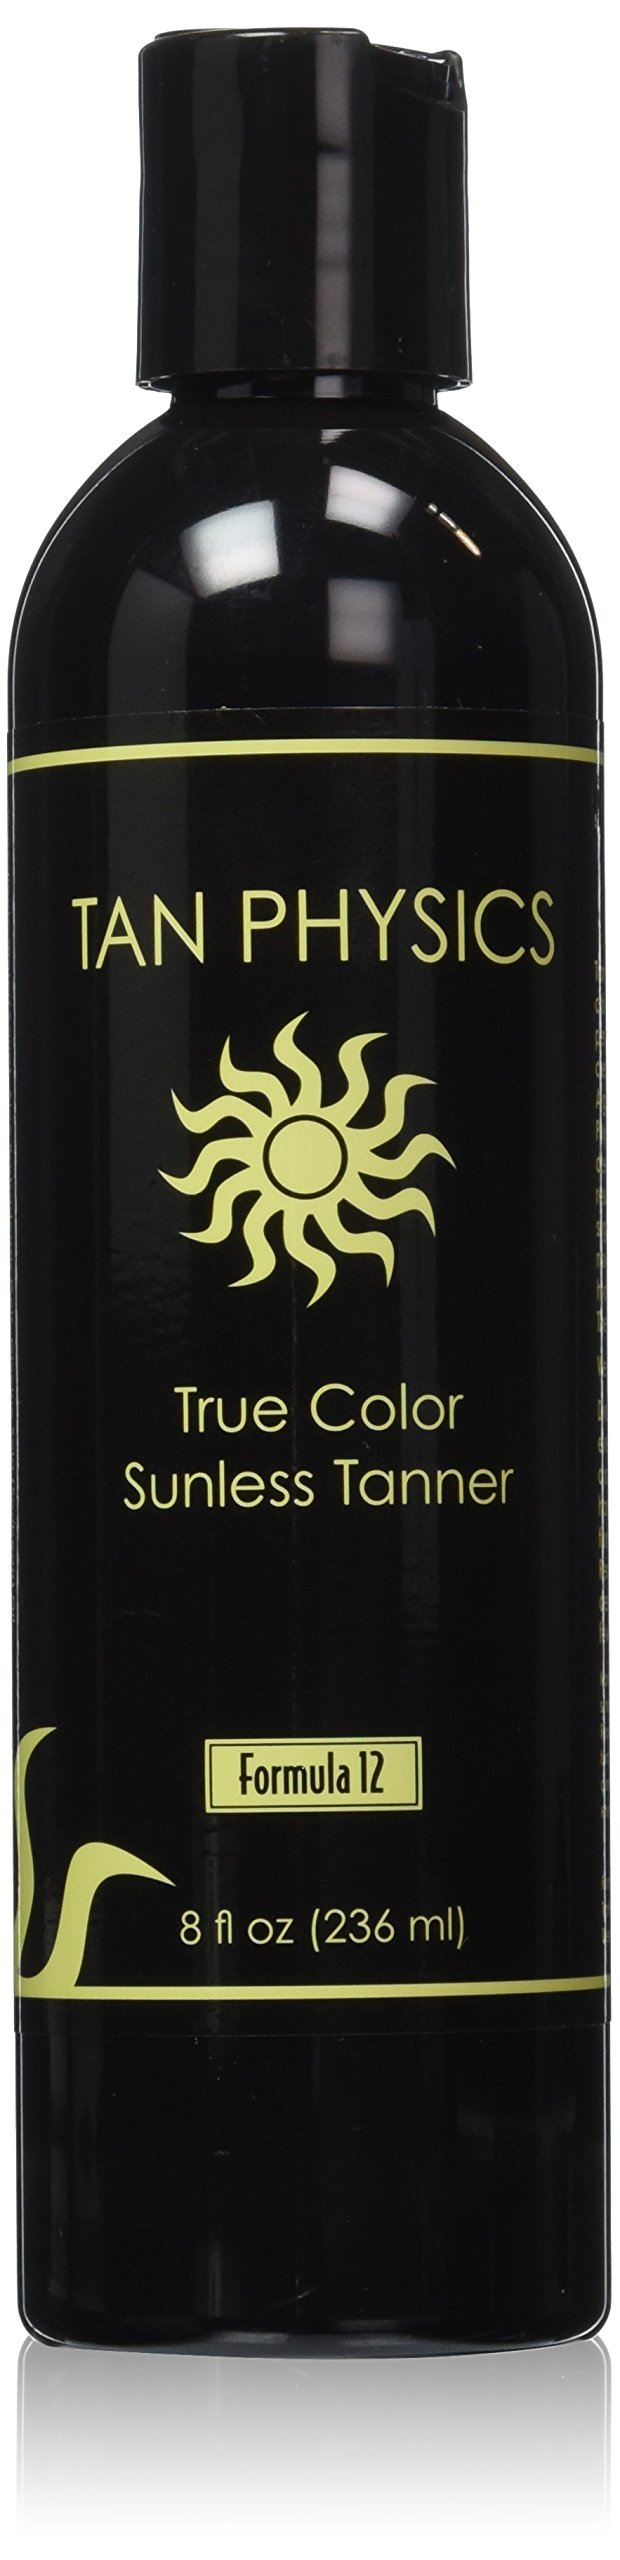 Tan Physics True Color Sunless Tanner 8 fl oz by Tan Physics